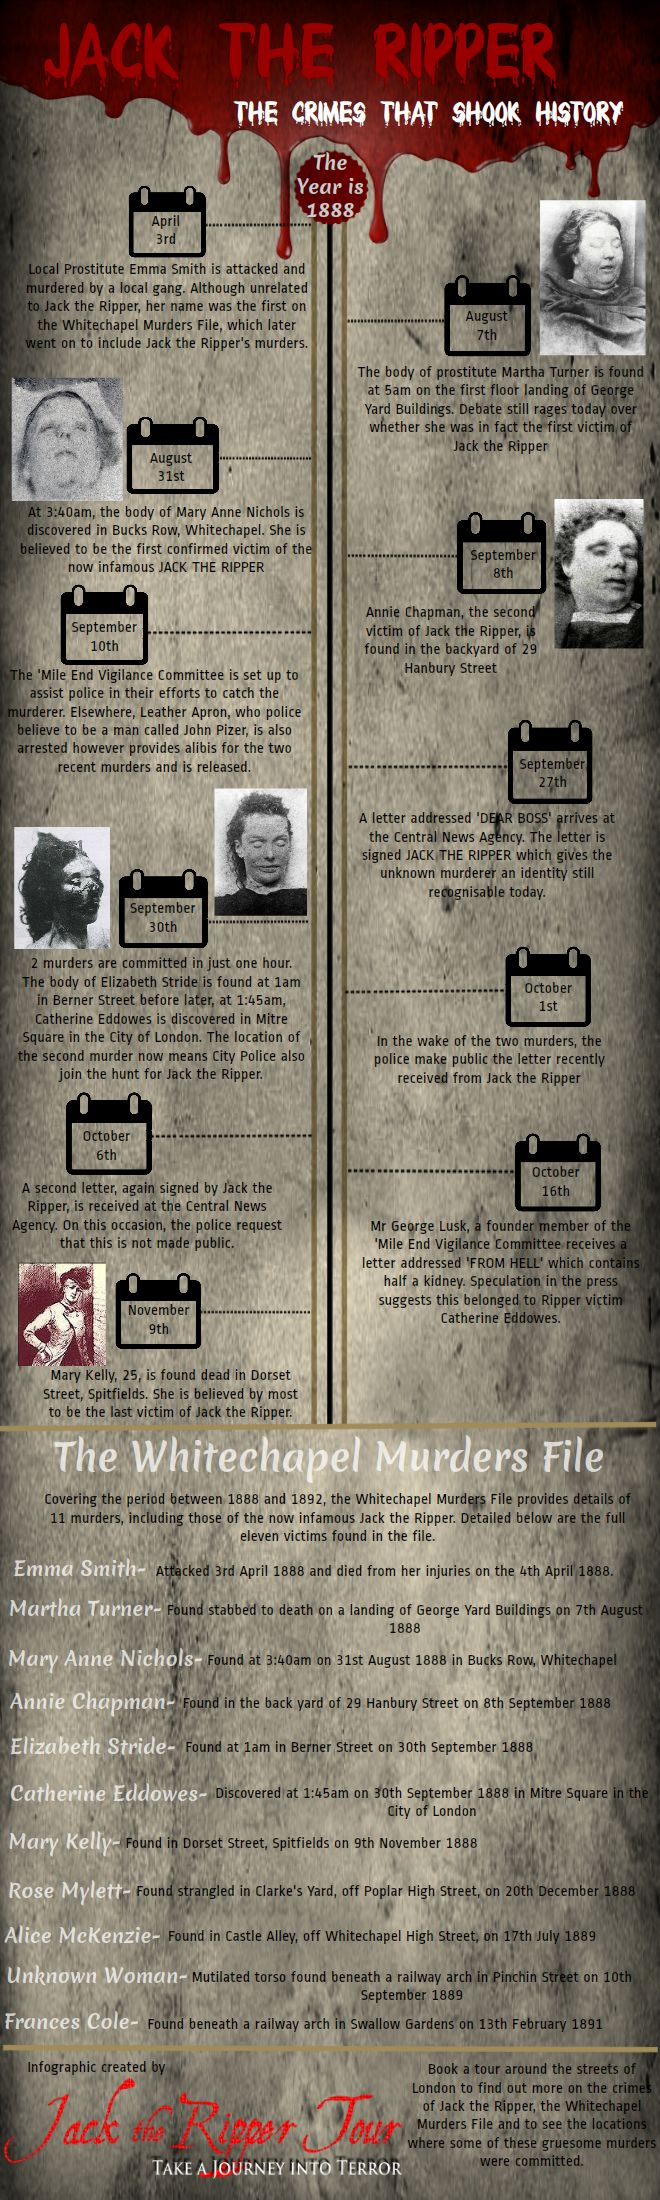 An infographic timeline that provides dates and locations of Jack the Ripper's murders in addition to detailing the other crimes that made up the Whitechapel Murders File from London's East End in 1888.